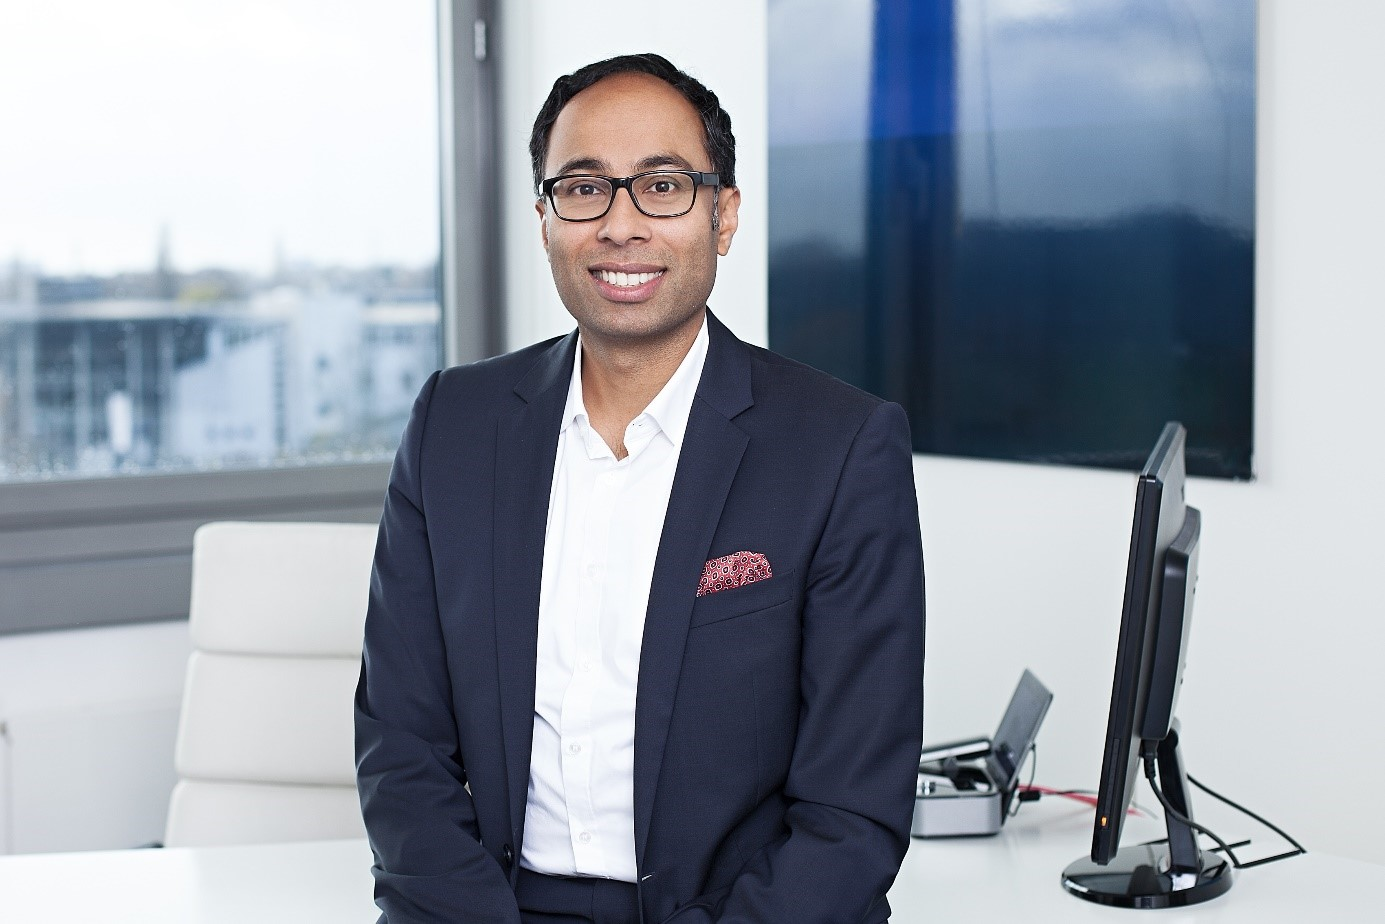 Image: Bino Mathew, Director of Marketing & Sales